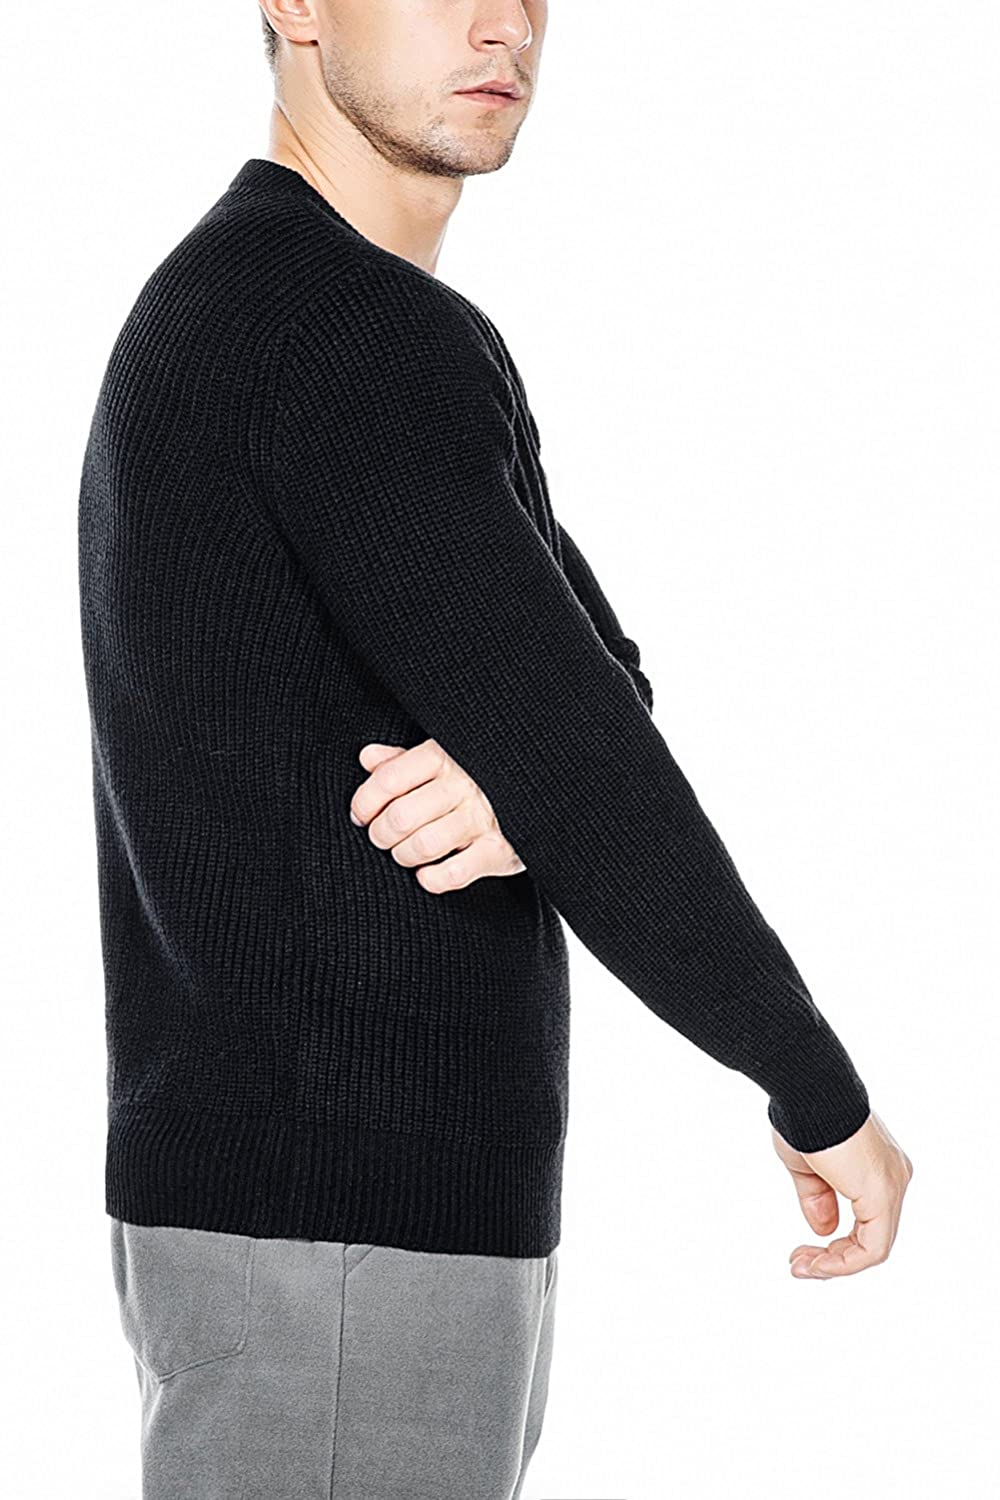 Rocorose Mens Knit Pullover Sweater Winter Ribbed Long Sleeves Crew Neck